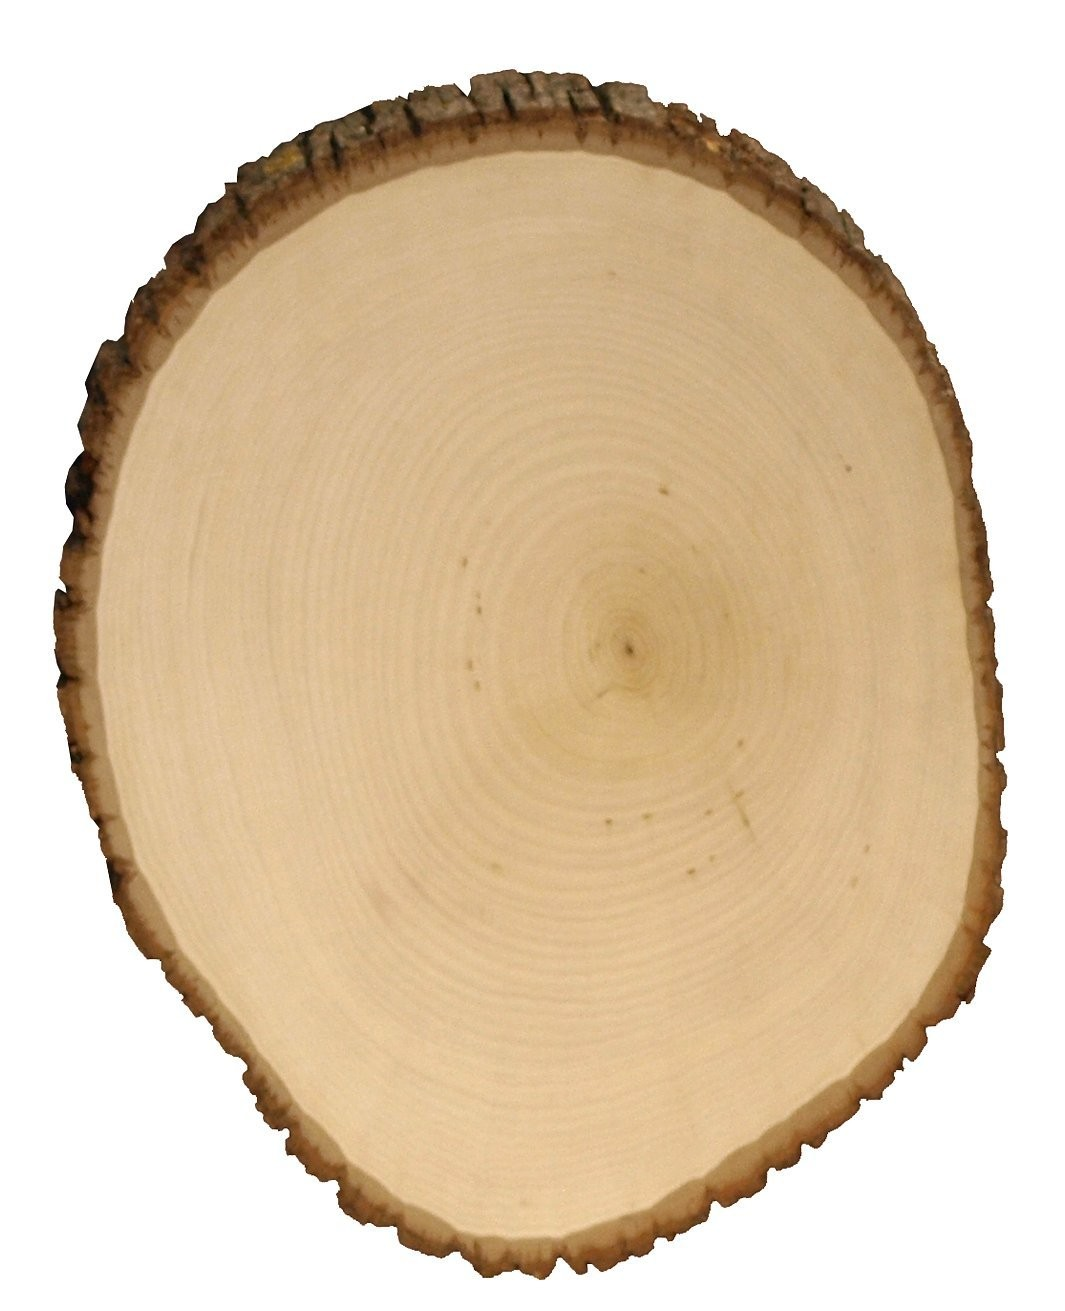 Walnut Hollow Basswood Country Oval, 11-12 in